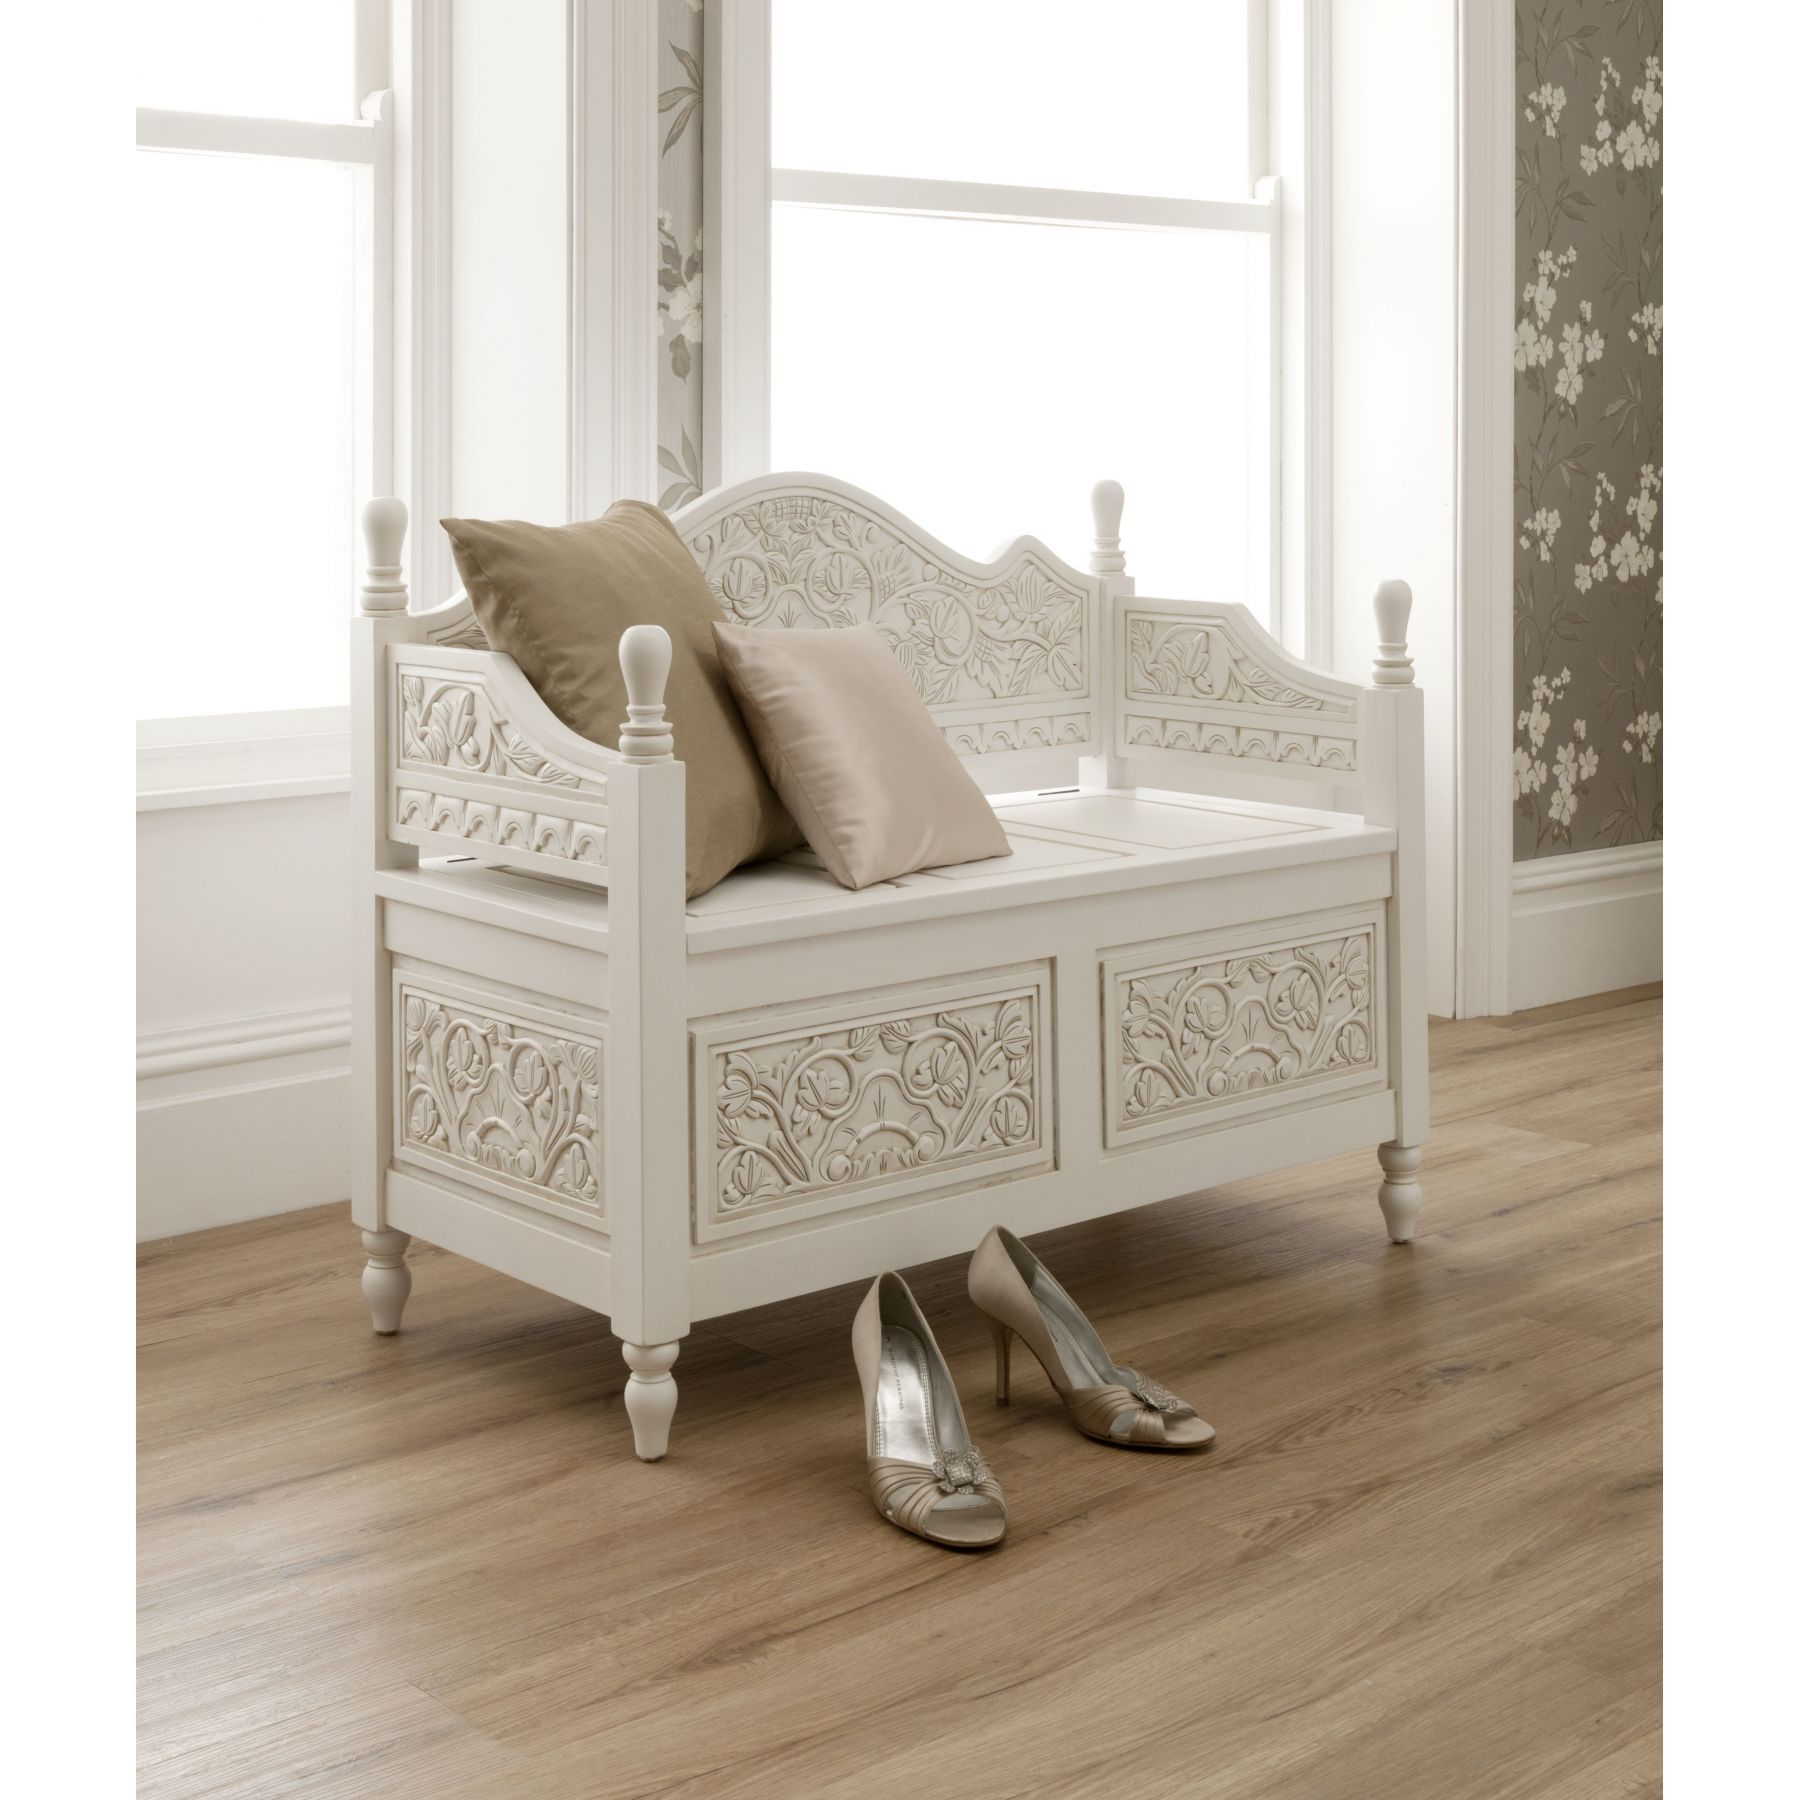 La Rochelle Antique French Monks Bench Is A Fantastic Addition To Our Award  Winning Furniture